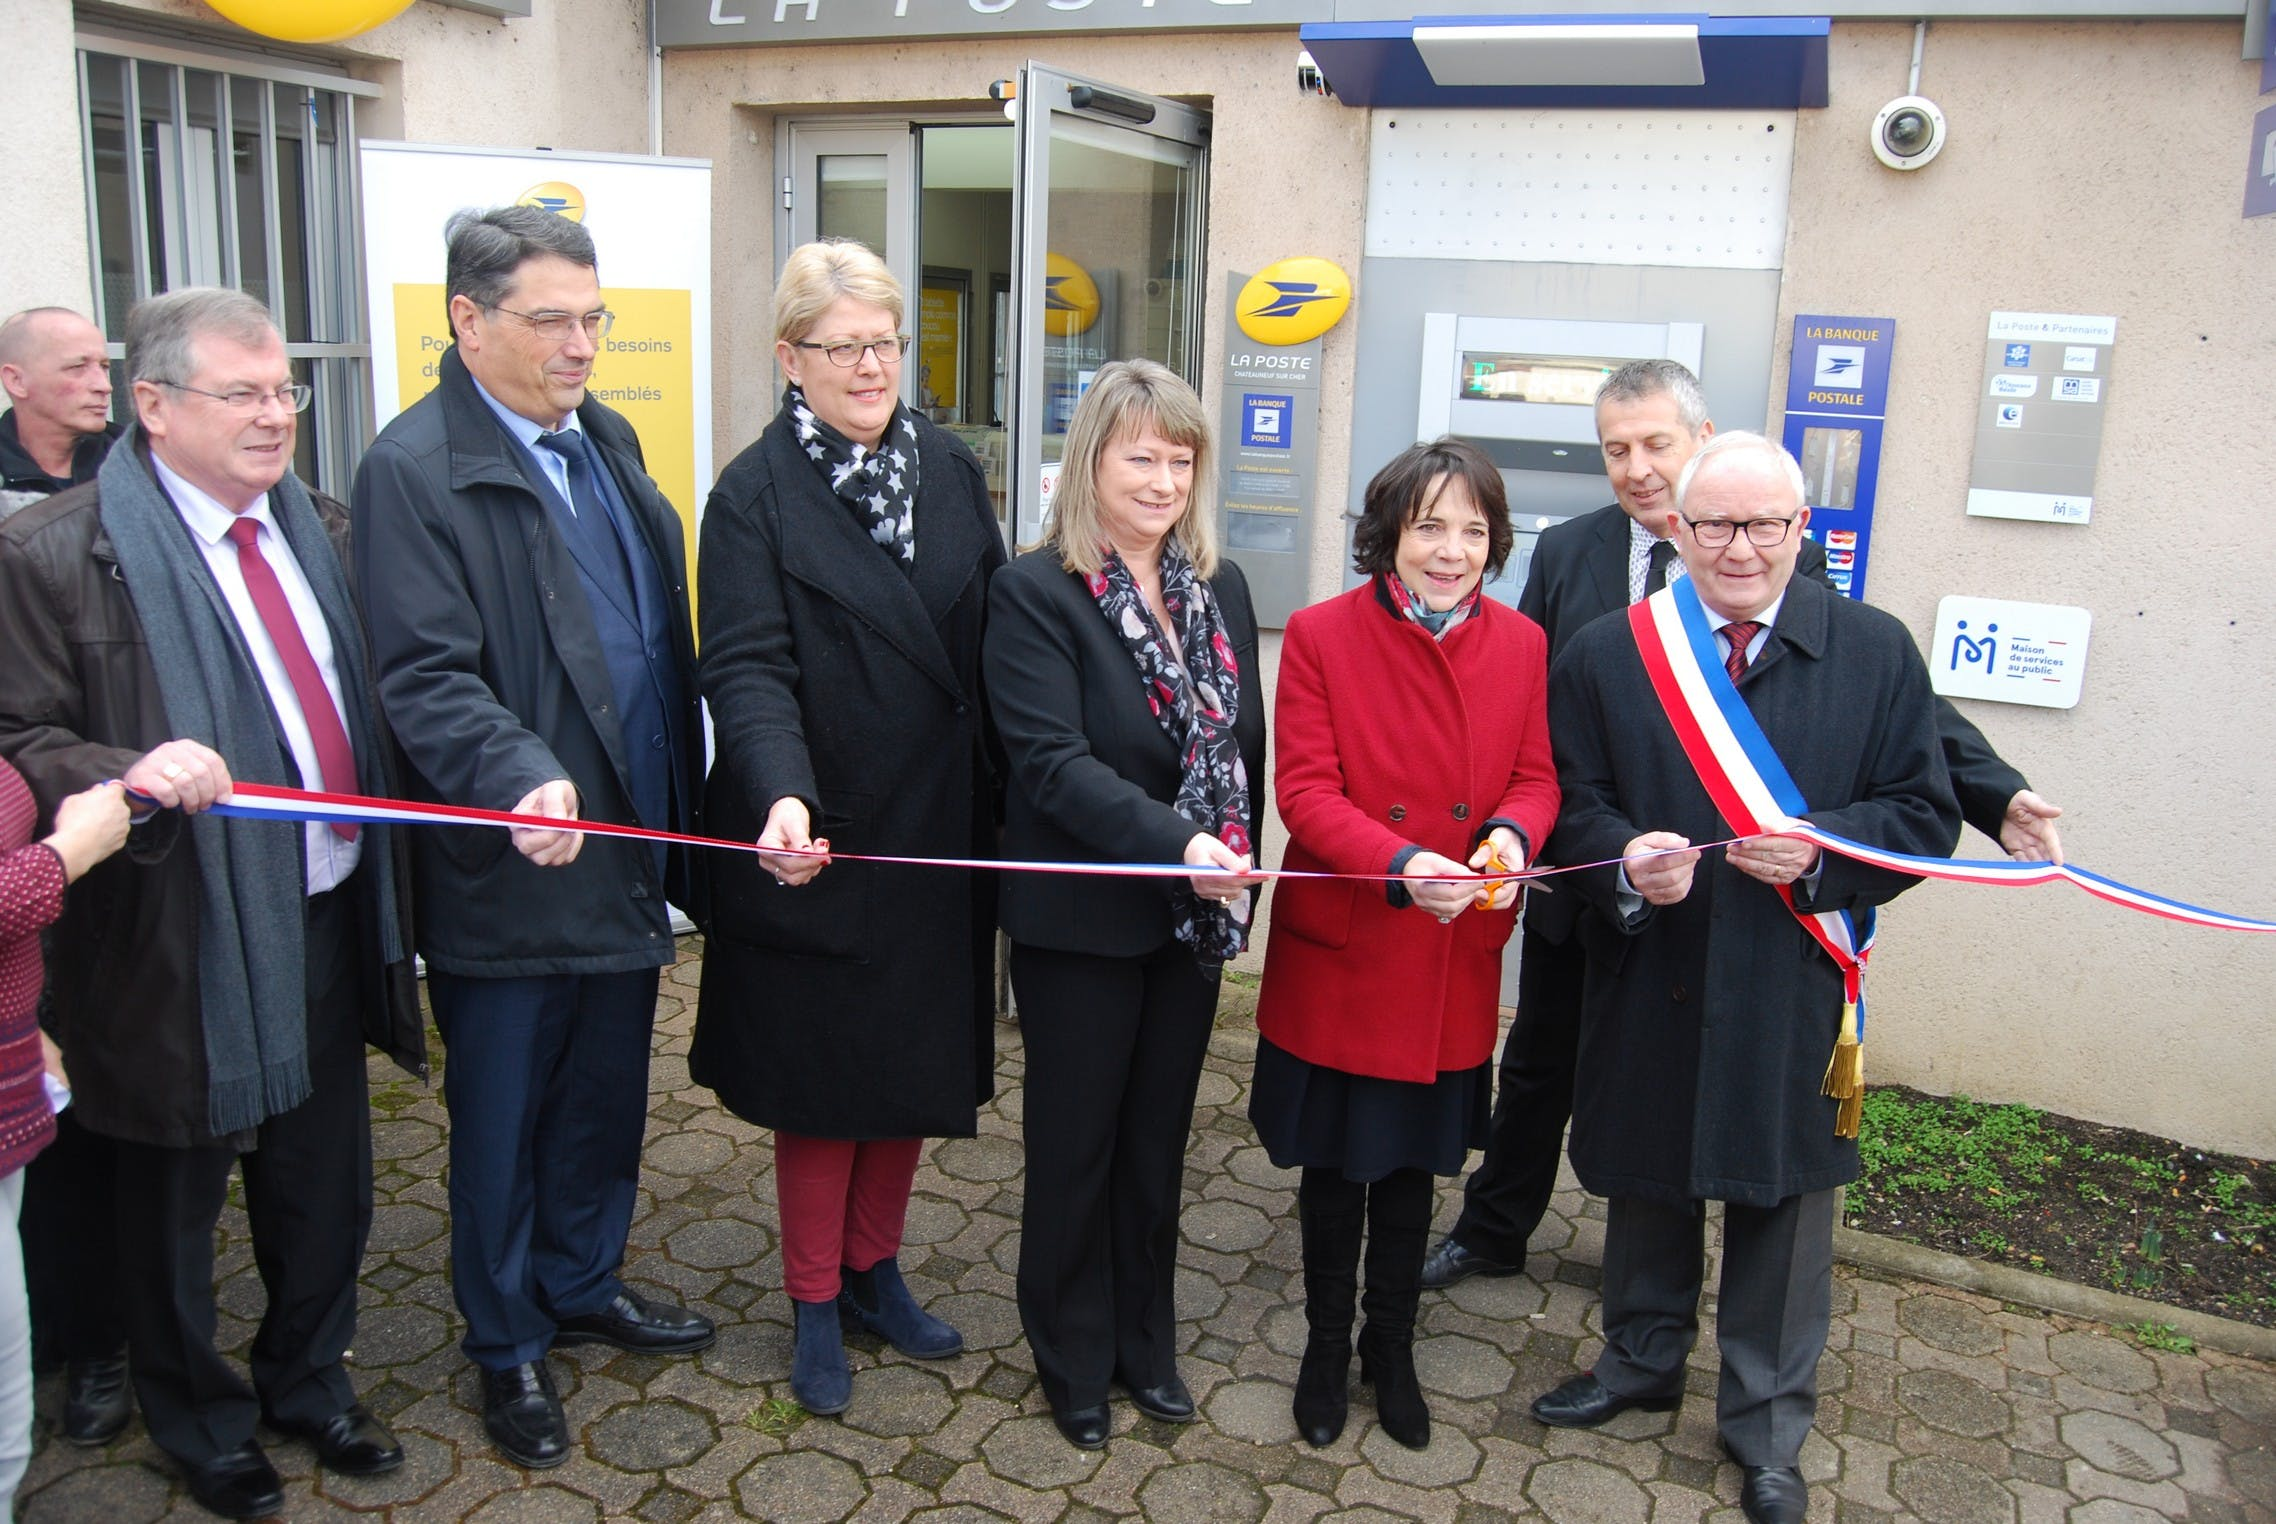 The Châteauneuf-sur-Cher public service centre was officially opened on 21 February 2018 by Catherine Ferrier, Prefect of Cher, and Patrick Vautier, Deputy Prefect of Vierzon in charge of the accessibility plan for public services in Cher.